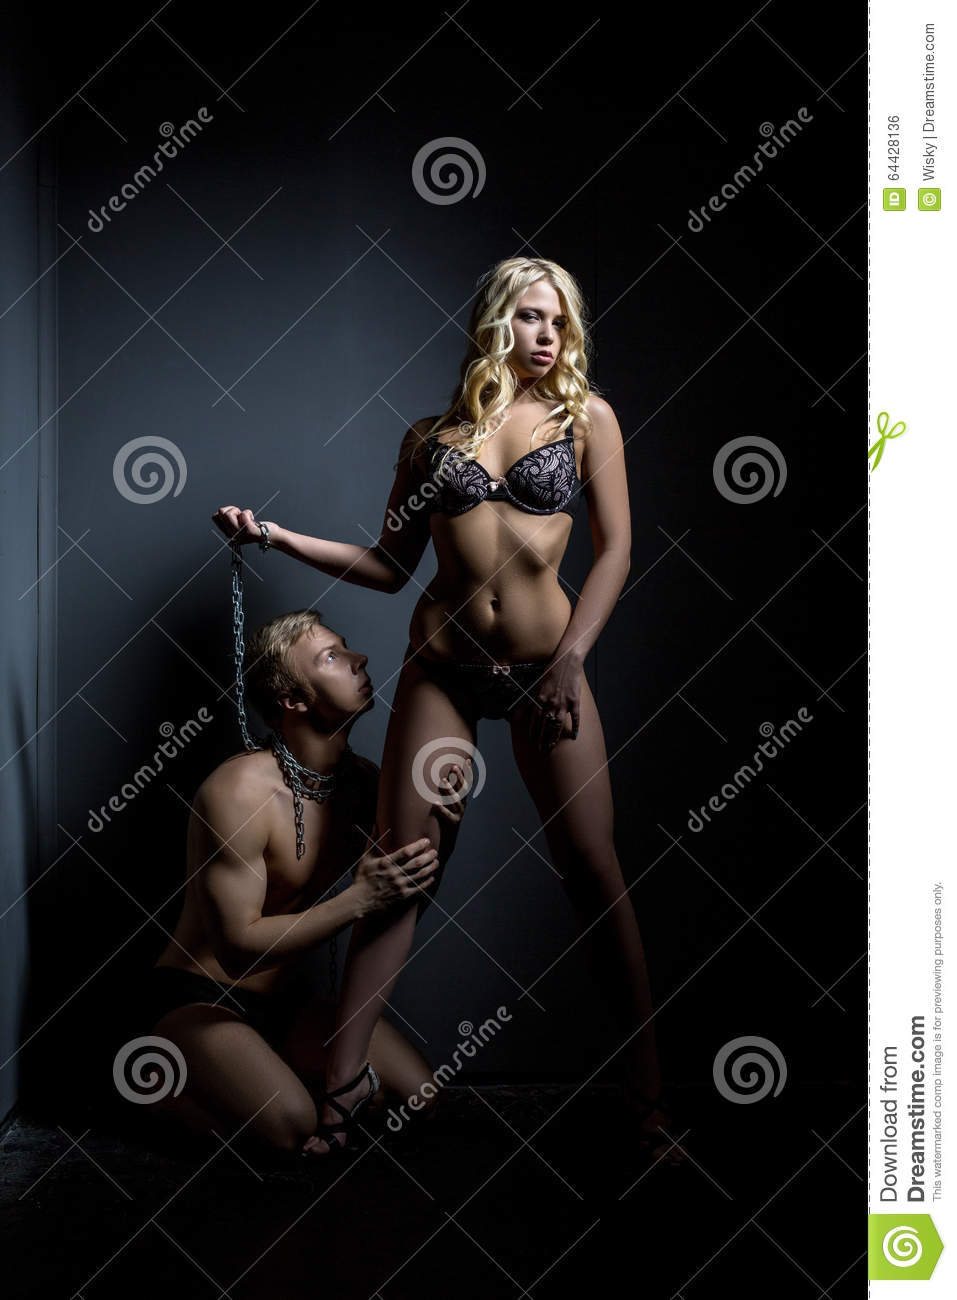 Submissive males for mistress bdsm